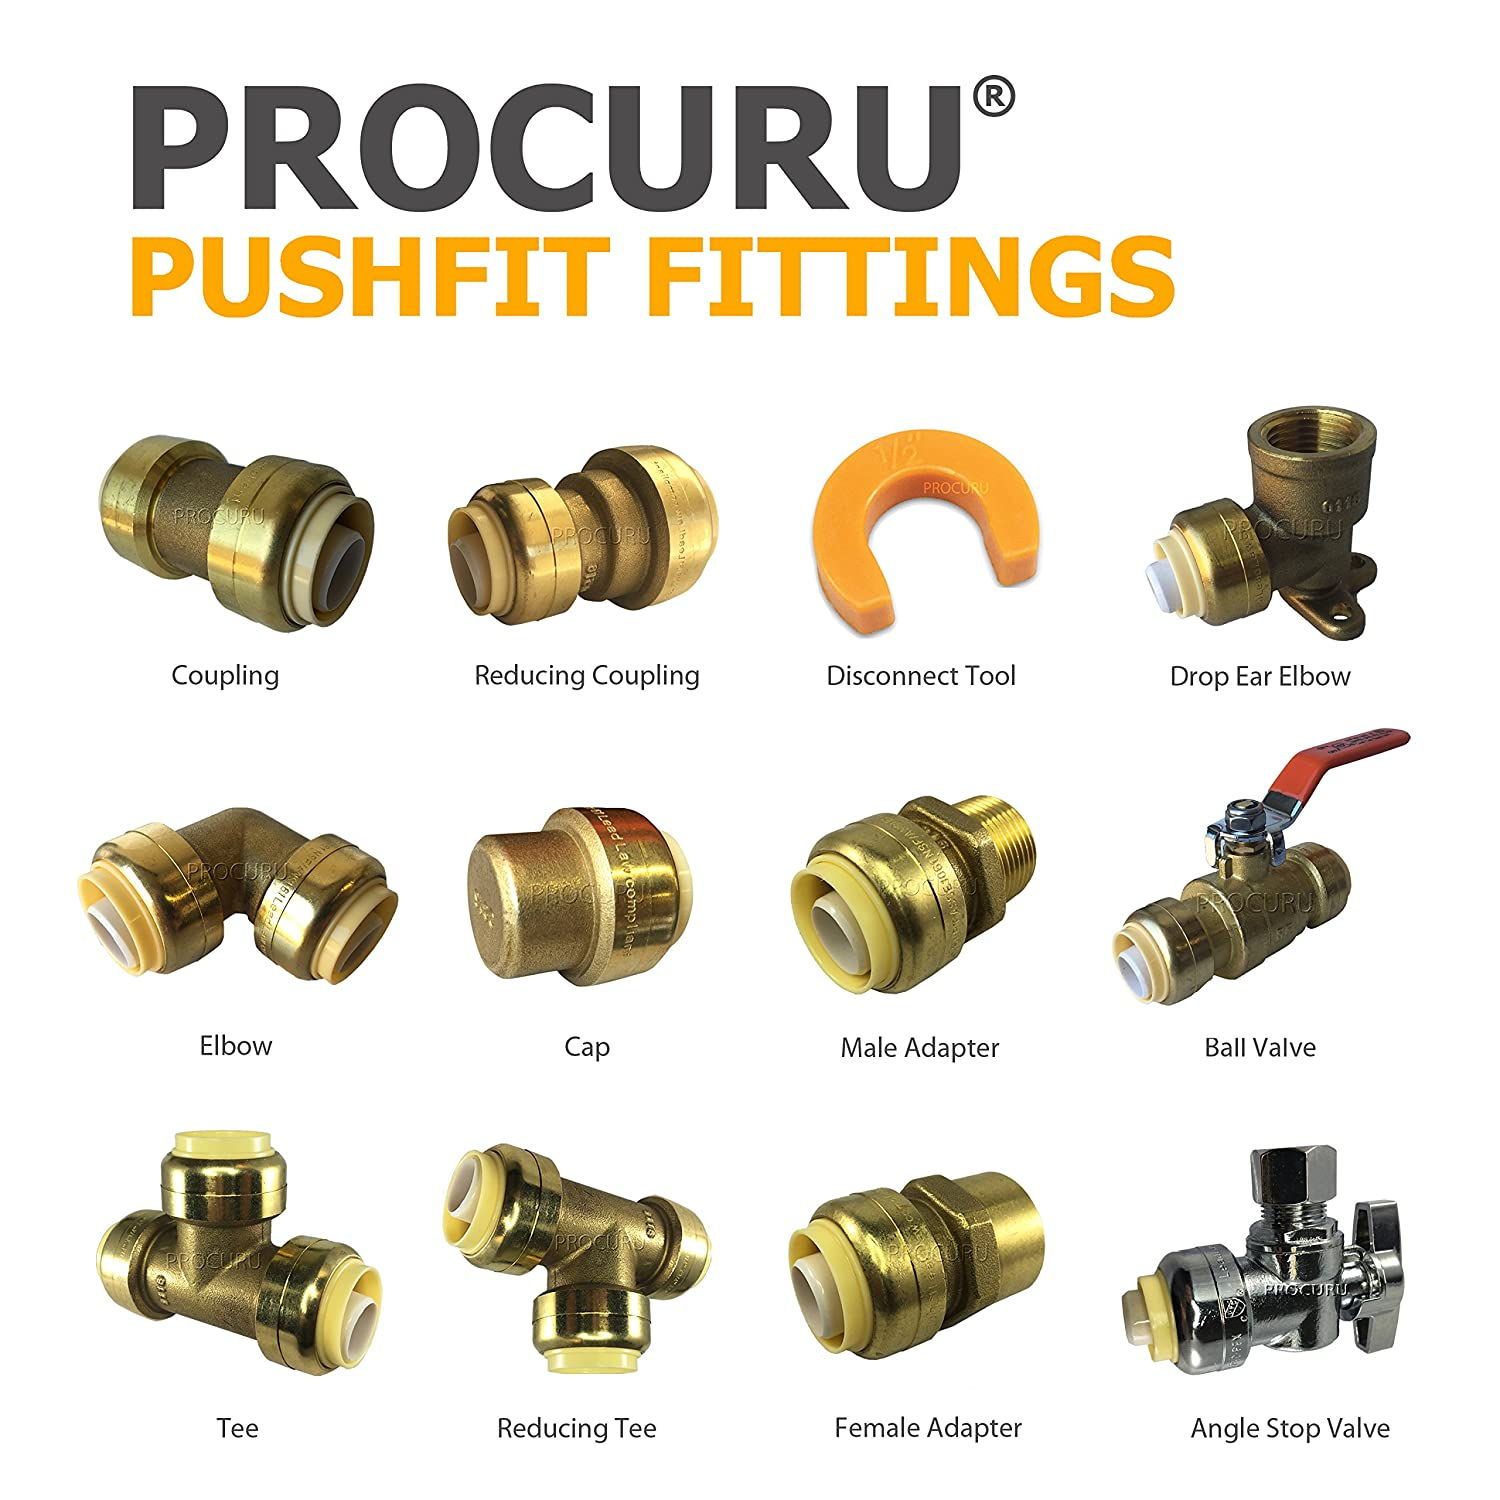 PEX PROCURU 1//2-Inch PushFit Combo Kit 1//2 PLUS 1//2 Disconnect Clip | Plumbing Fitting for Copper 1//2 CPVC Pipe 1 pc 10 pcs 0.5 Inch 0.5 Inch Lead Free Certified 1//2 PushFit Couplings Lead Free Certified